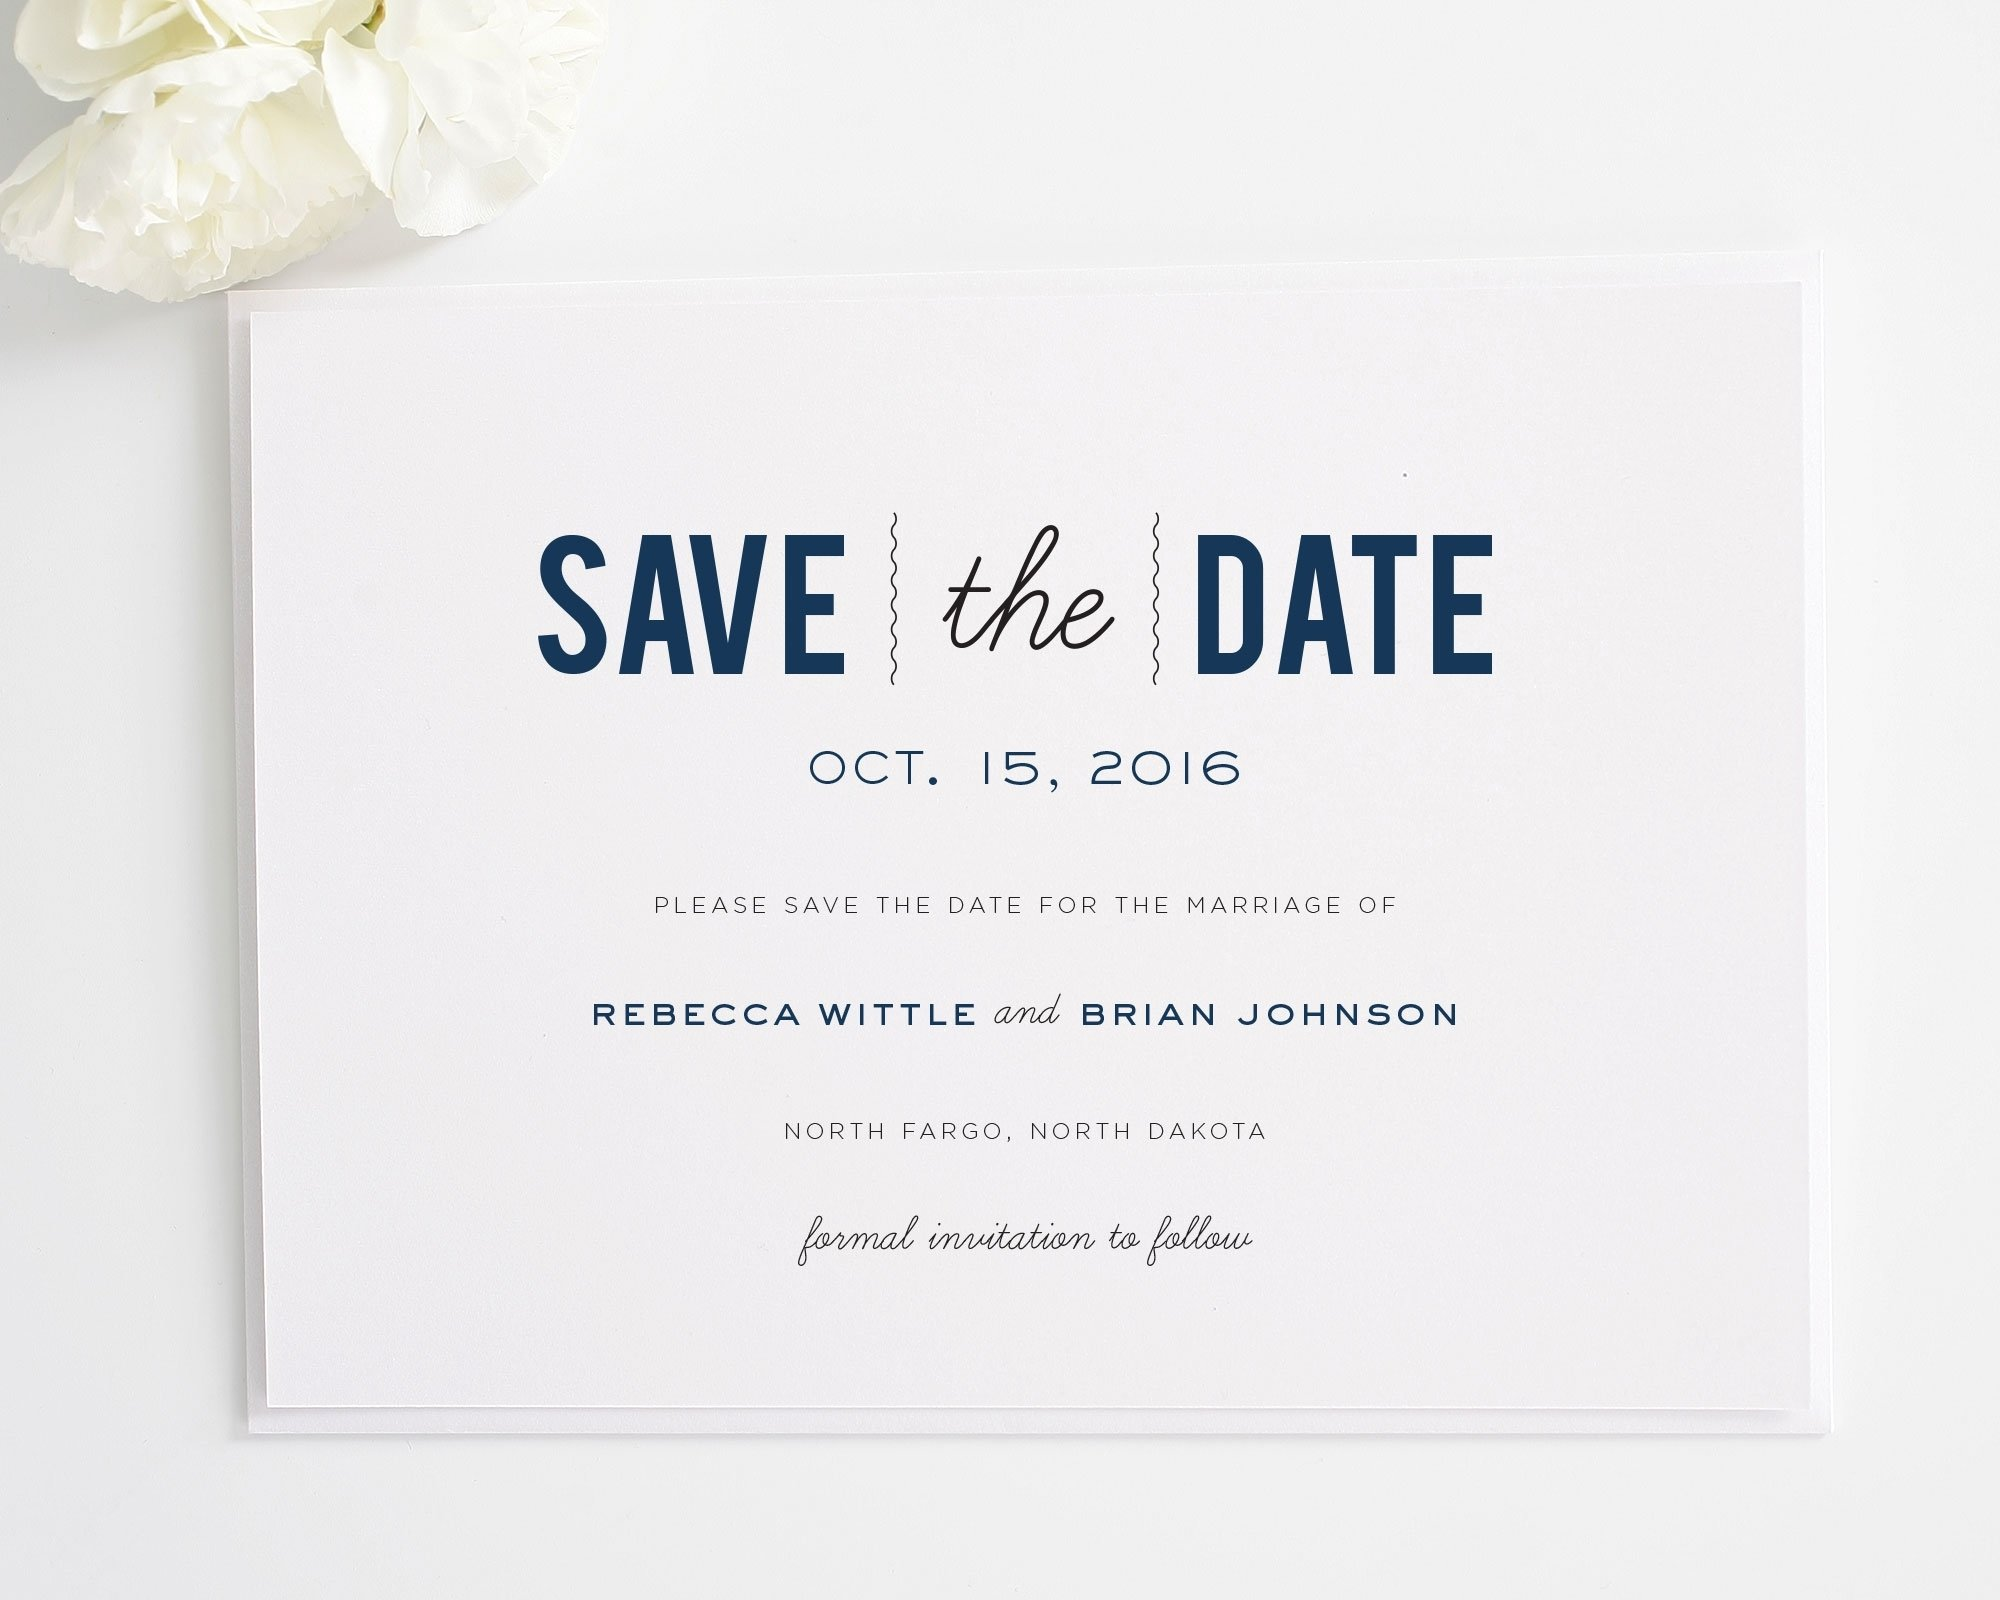 10 Fashionable Save The Date Invitations Ideas save the date invitation templates tire driveeasy co